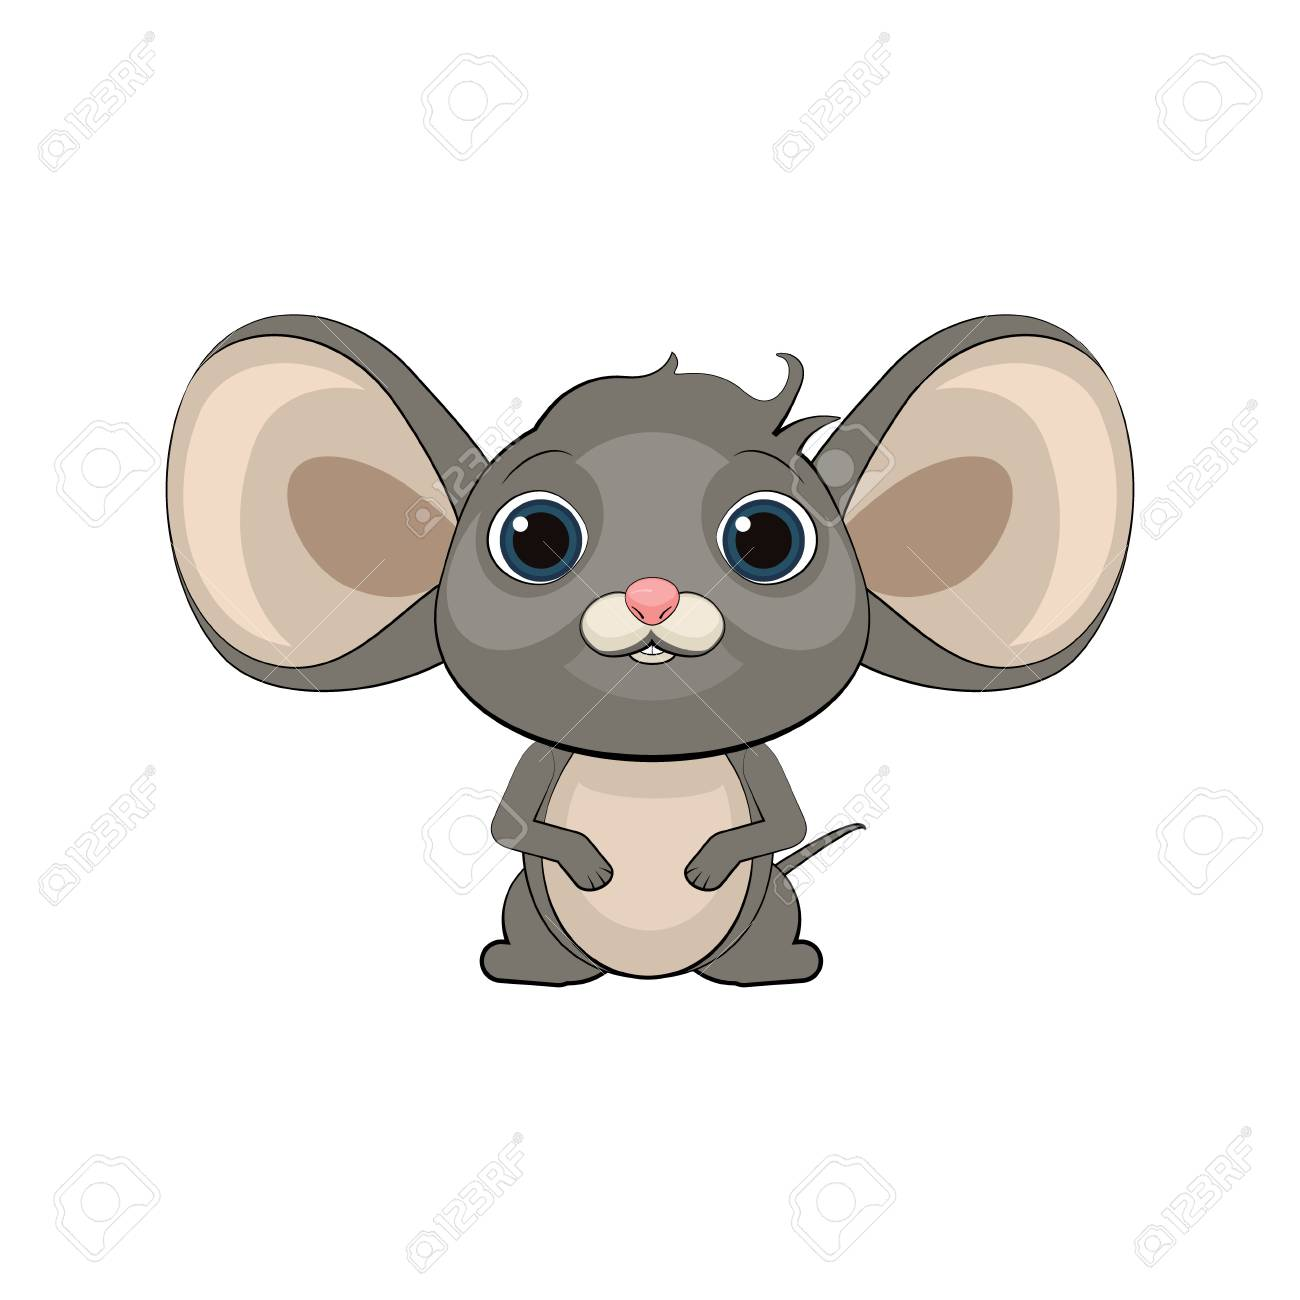 cute cartoon mouse vector illustration royalty free cliparts rh 123rf com cartoon mouse pictures to color drunk mouse cartoon pictures